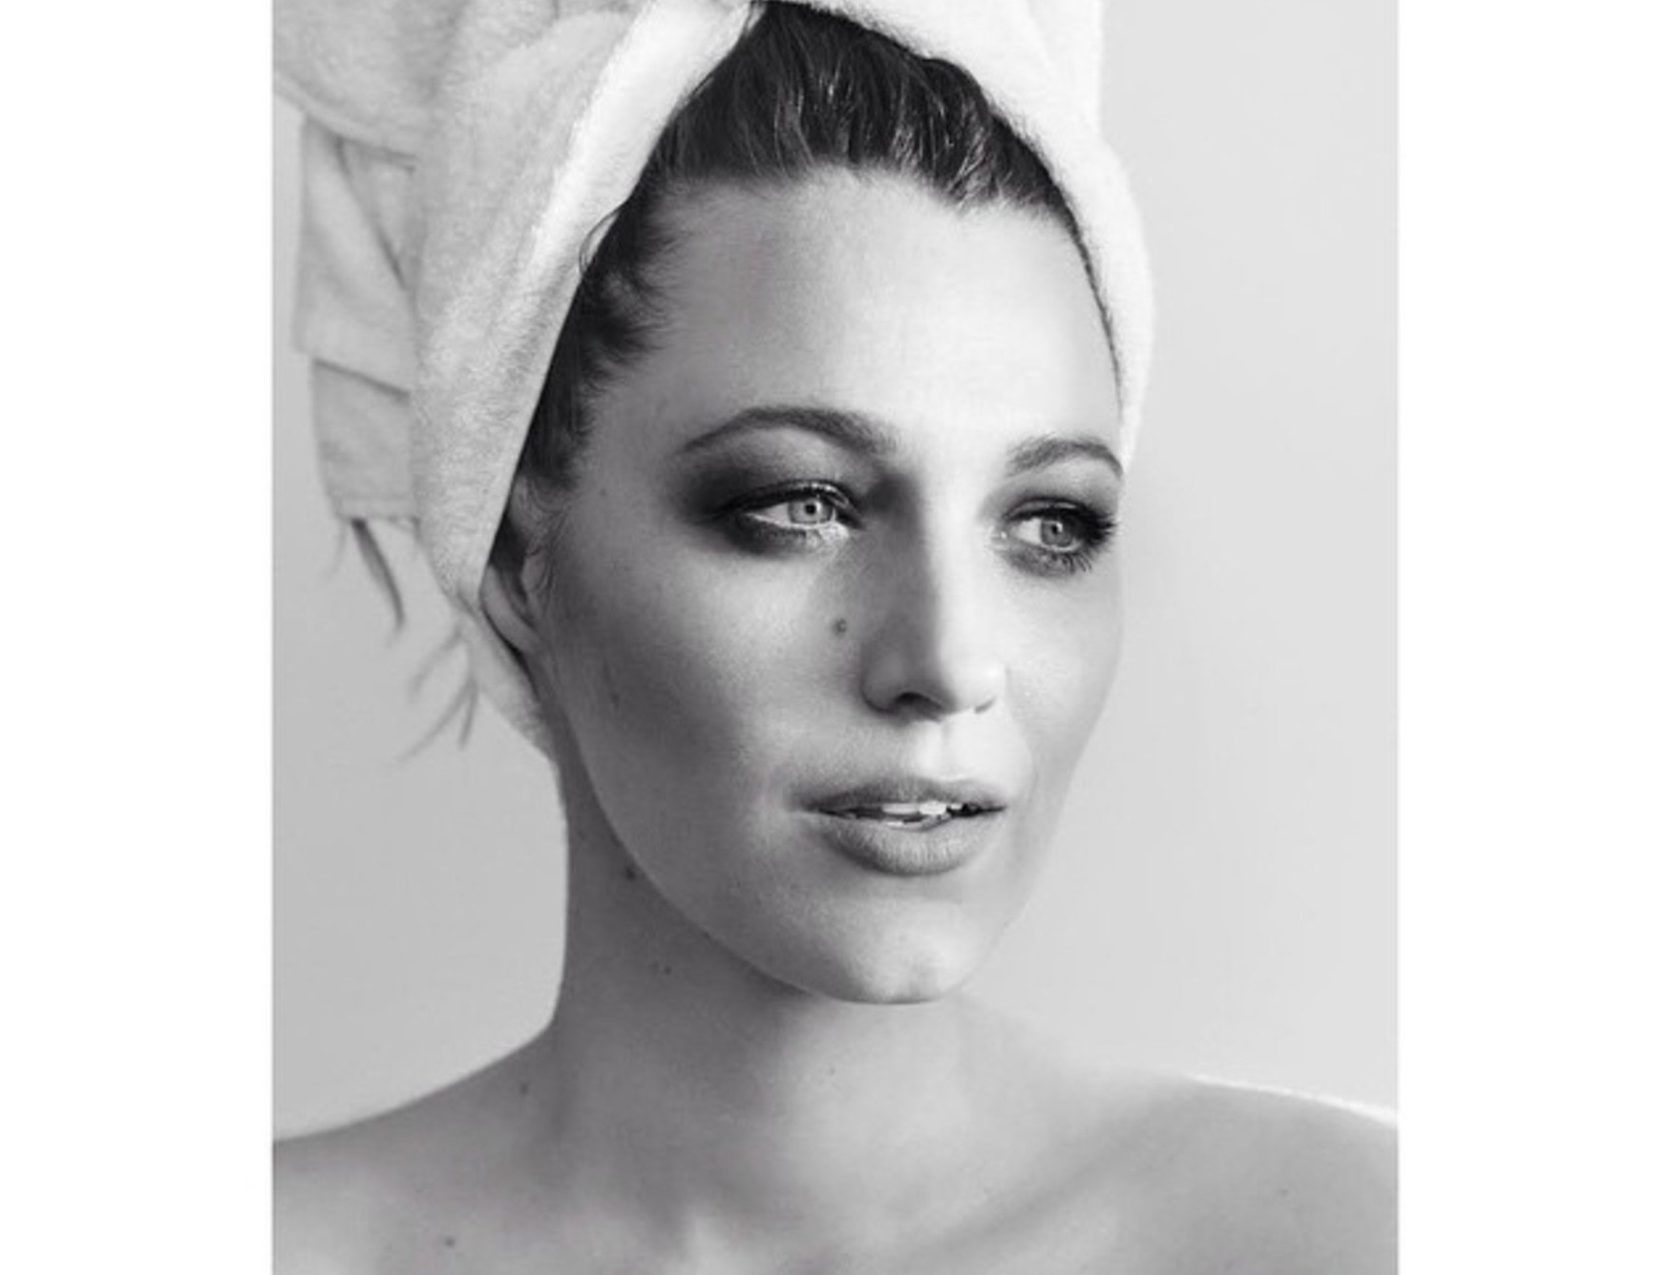 "Mario Testino ""Towel series 72, Blake Lively"", Image: 238558685, License: Rights-managed, Restrictions: , Model Release: no, Credit line: Profimedia, Face To Face A"